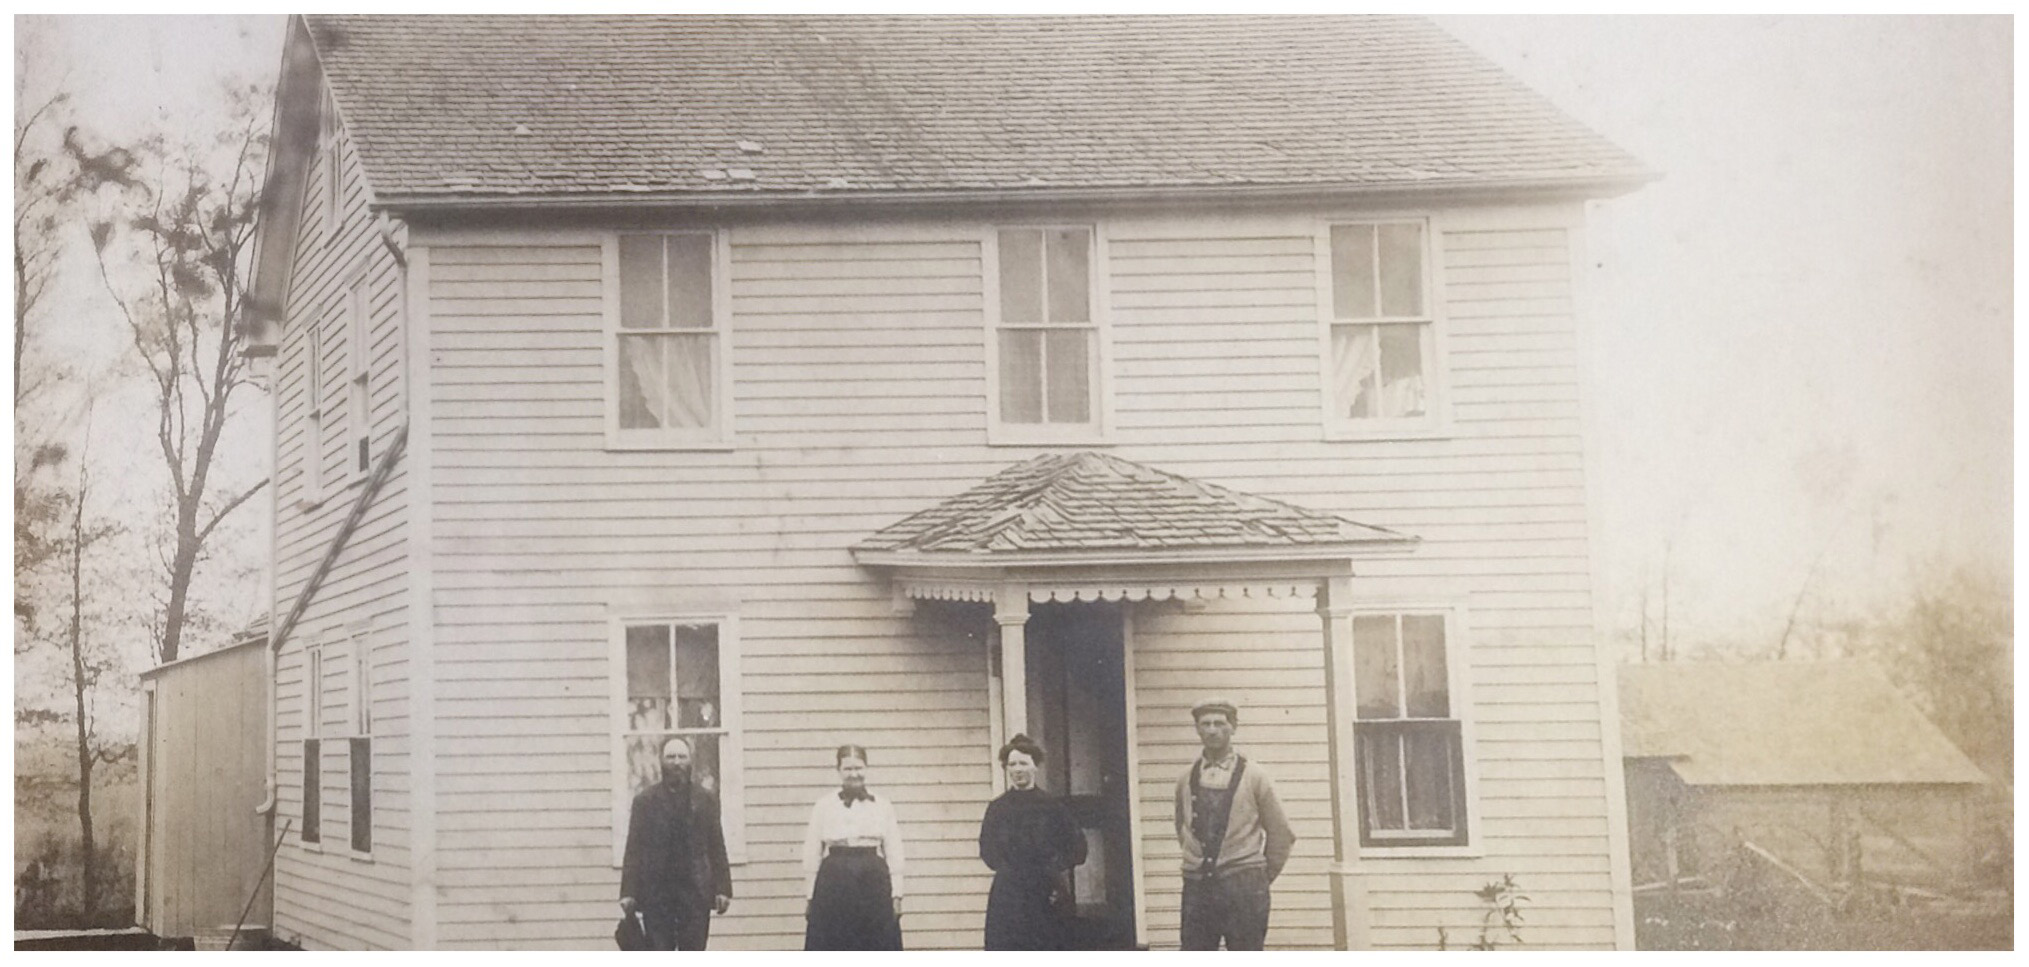 The Vik family outside their home in the early 20th century. Photo courtesy of Linda Nerstad Kemp.